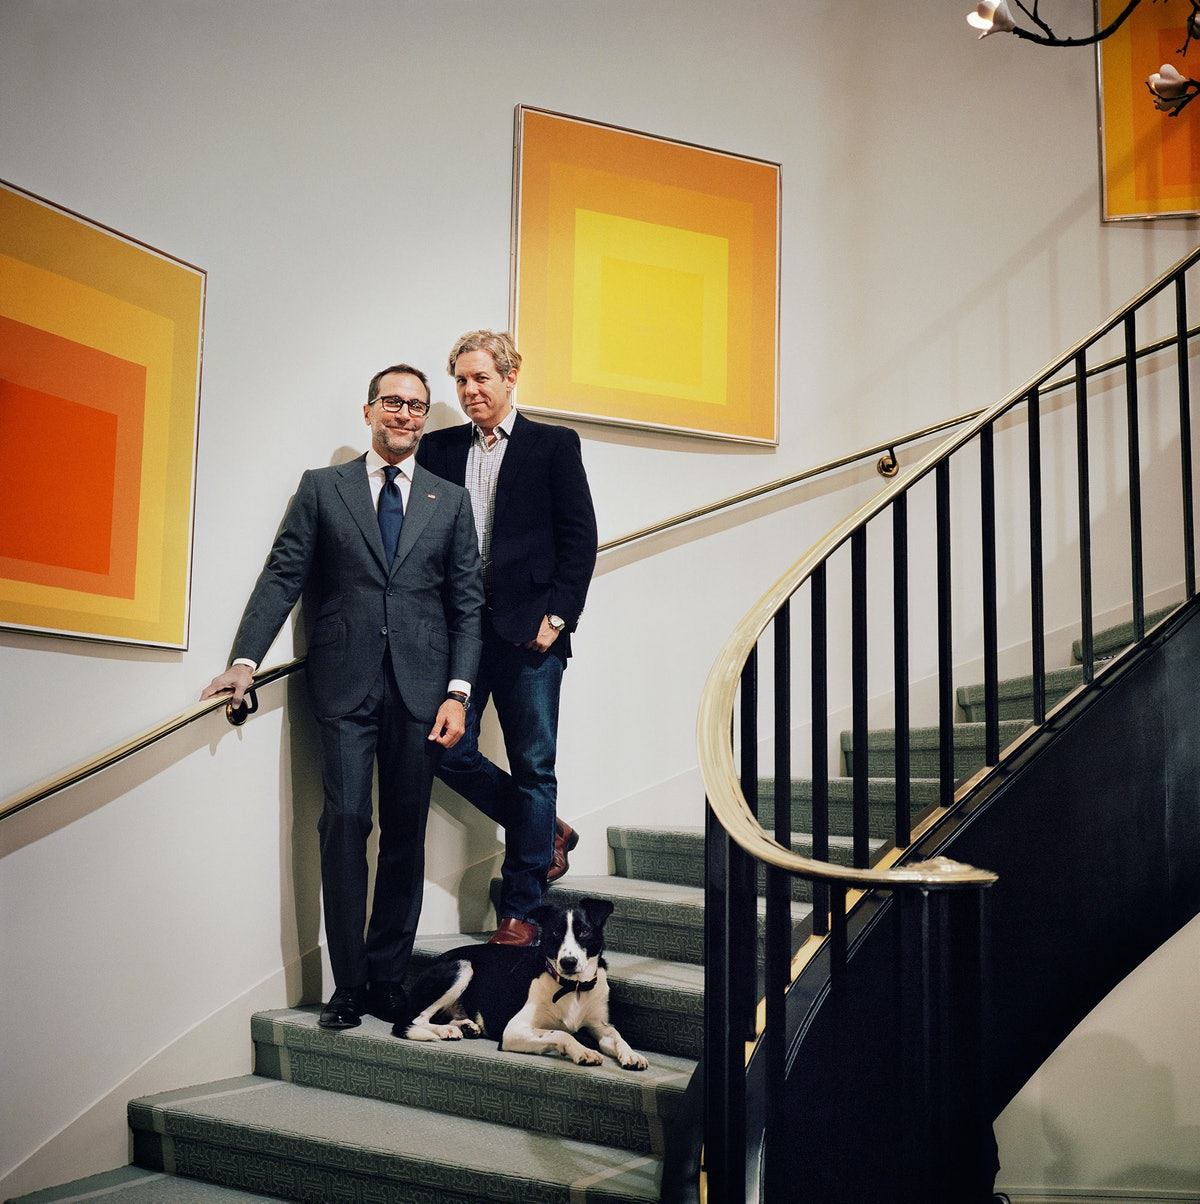 James Costos and Michael Smith